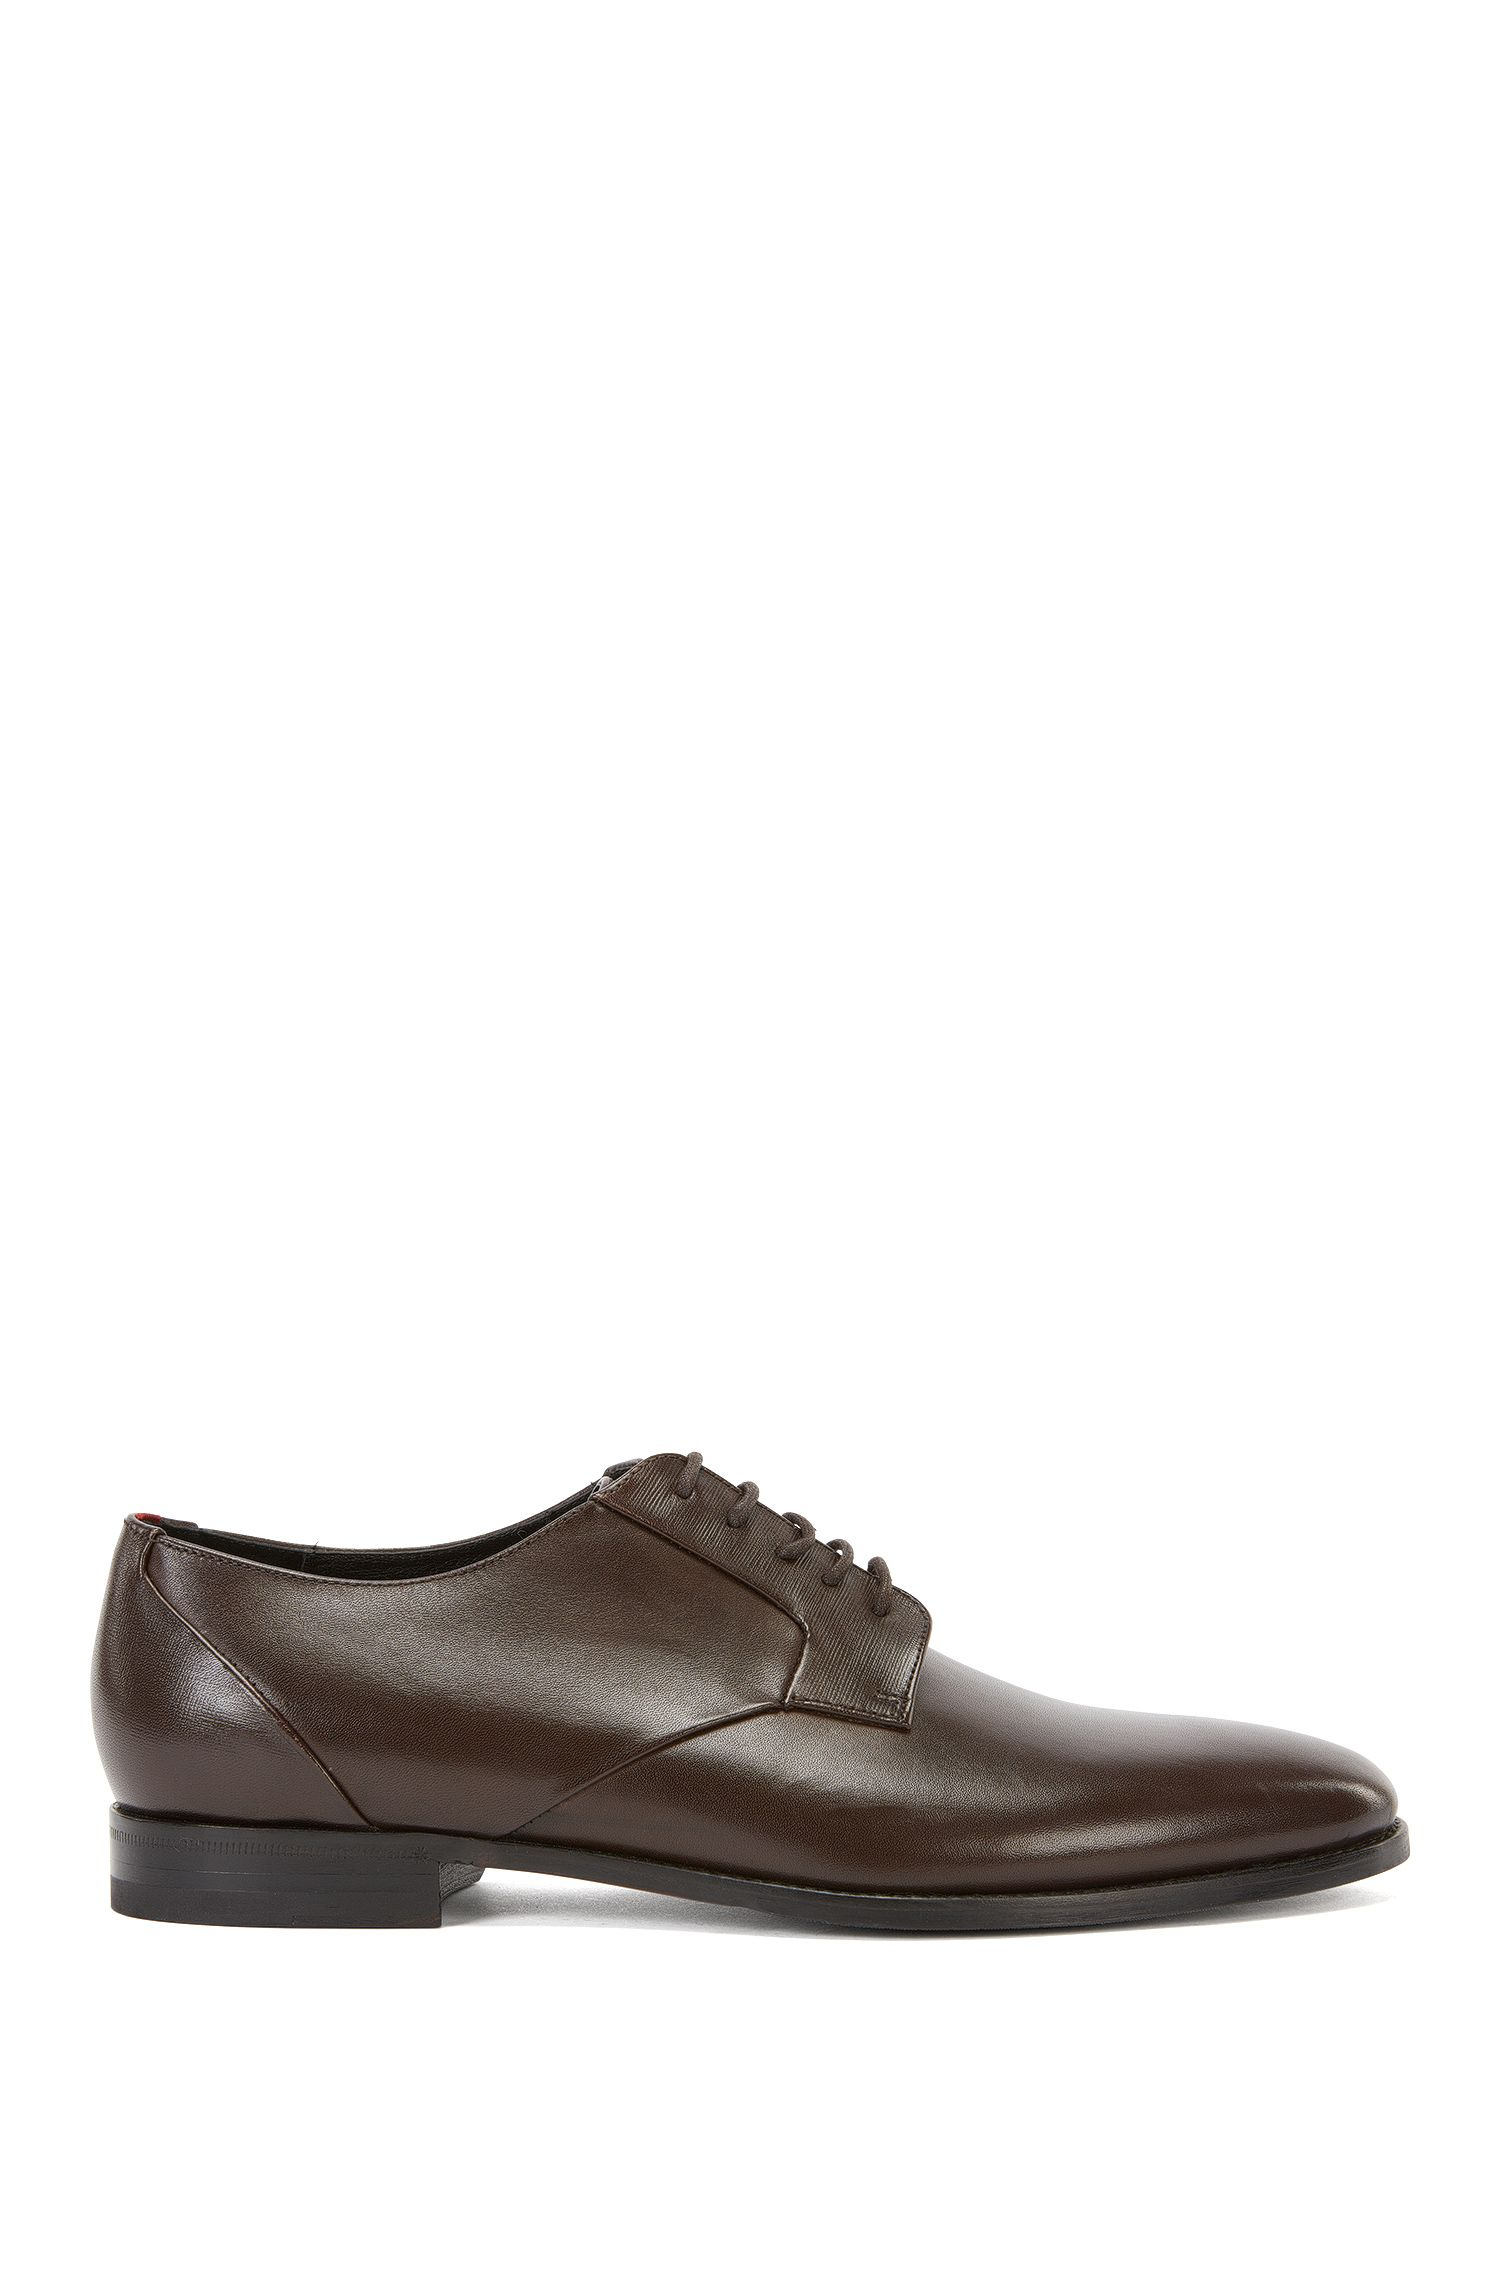 Lace-up Derby shoes in burnished leather